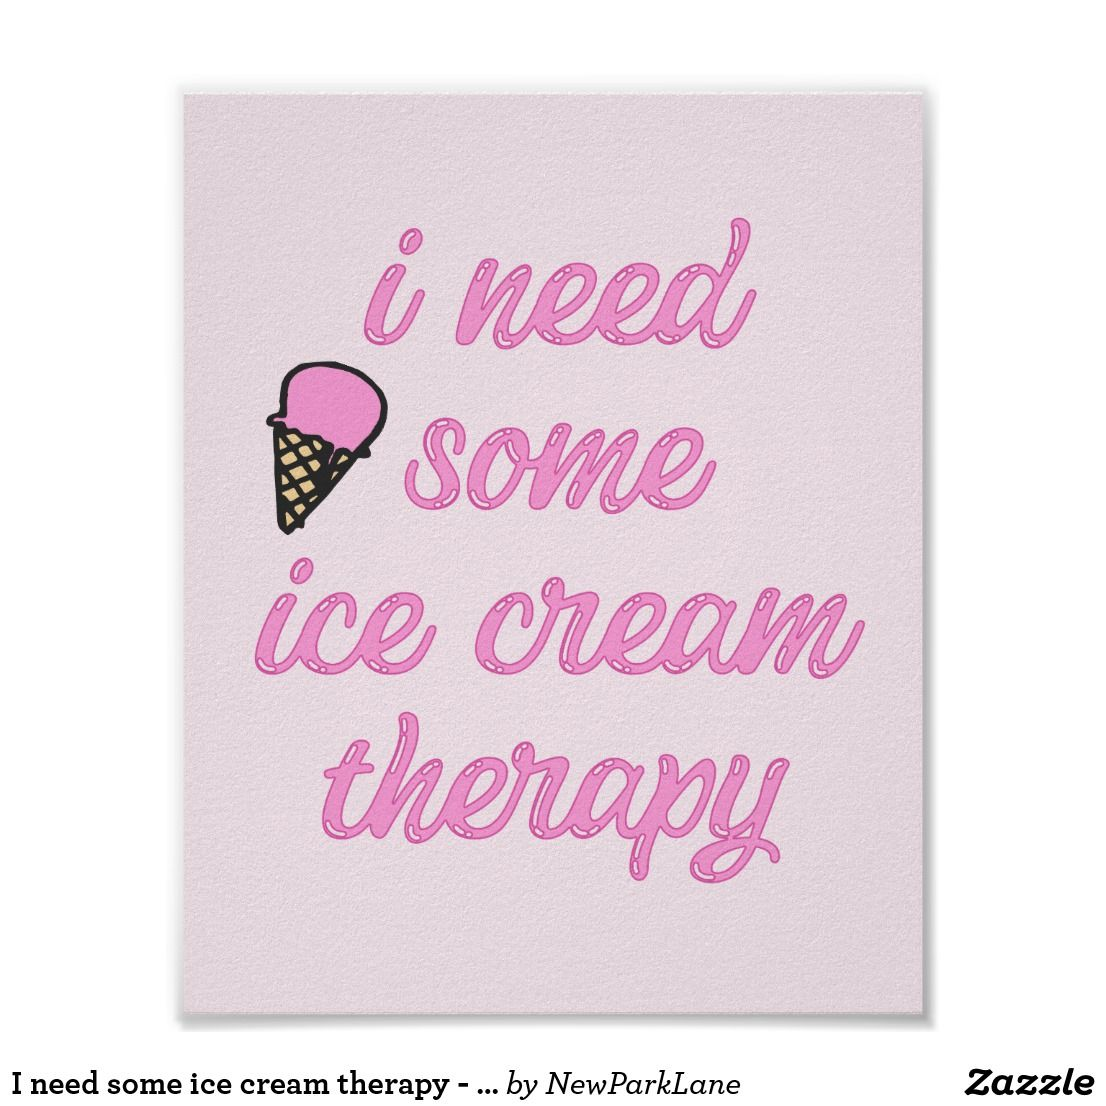 I Need Some Ice Cream Therapy Fun Quote Poster Zazzle Com In 2021 Ice Cream Quotes Ice Cream Quotes Funny Drug Quotes